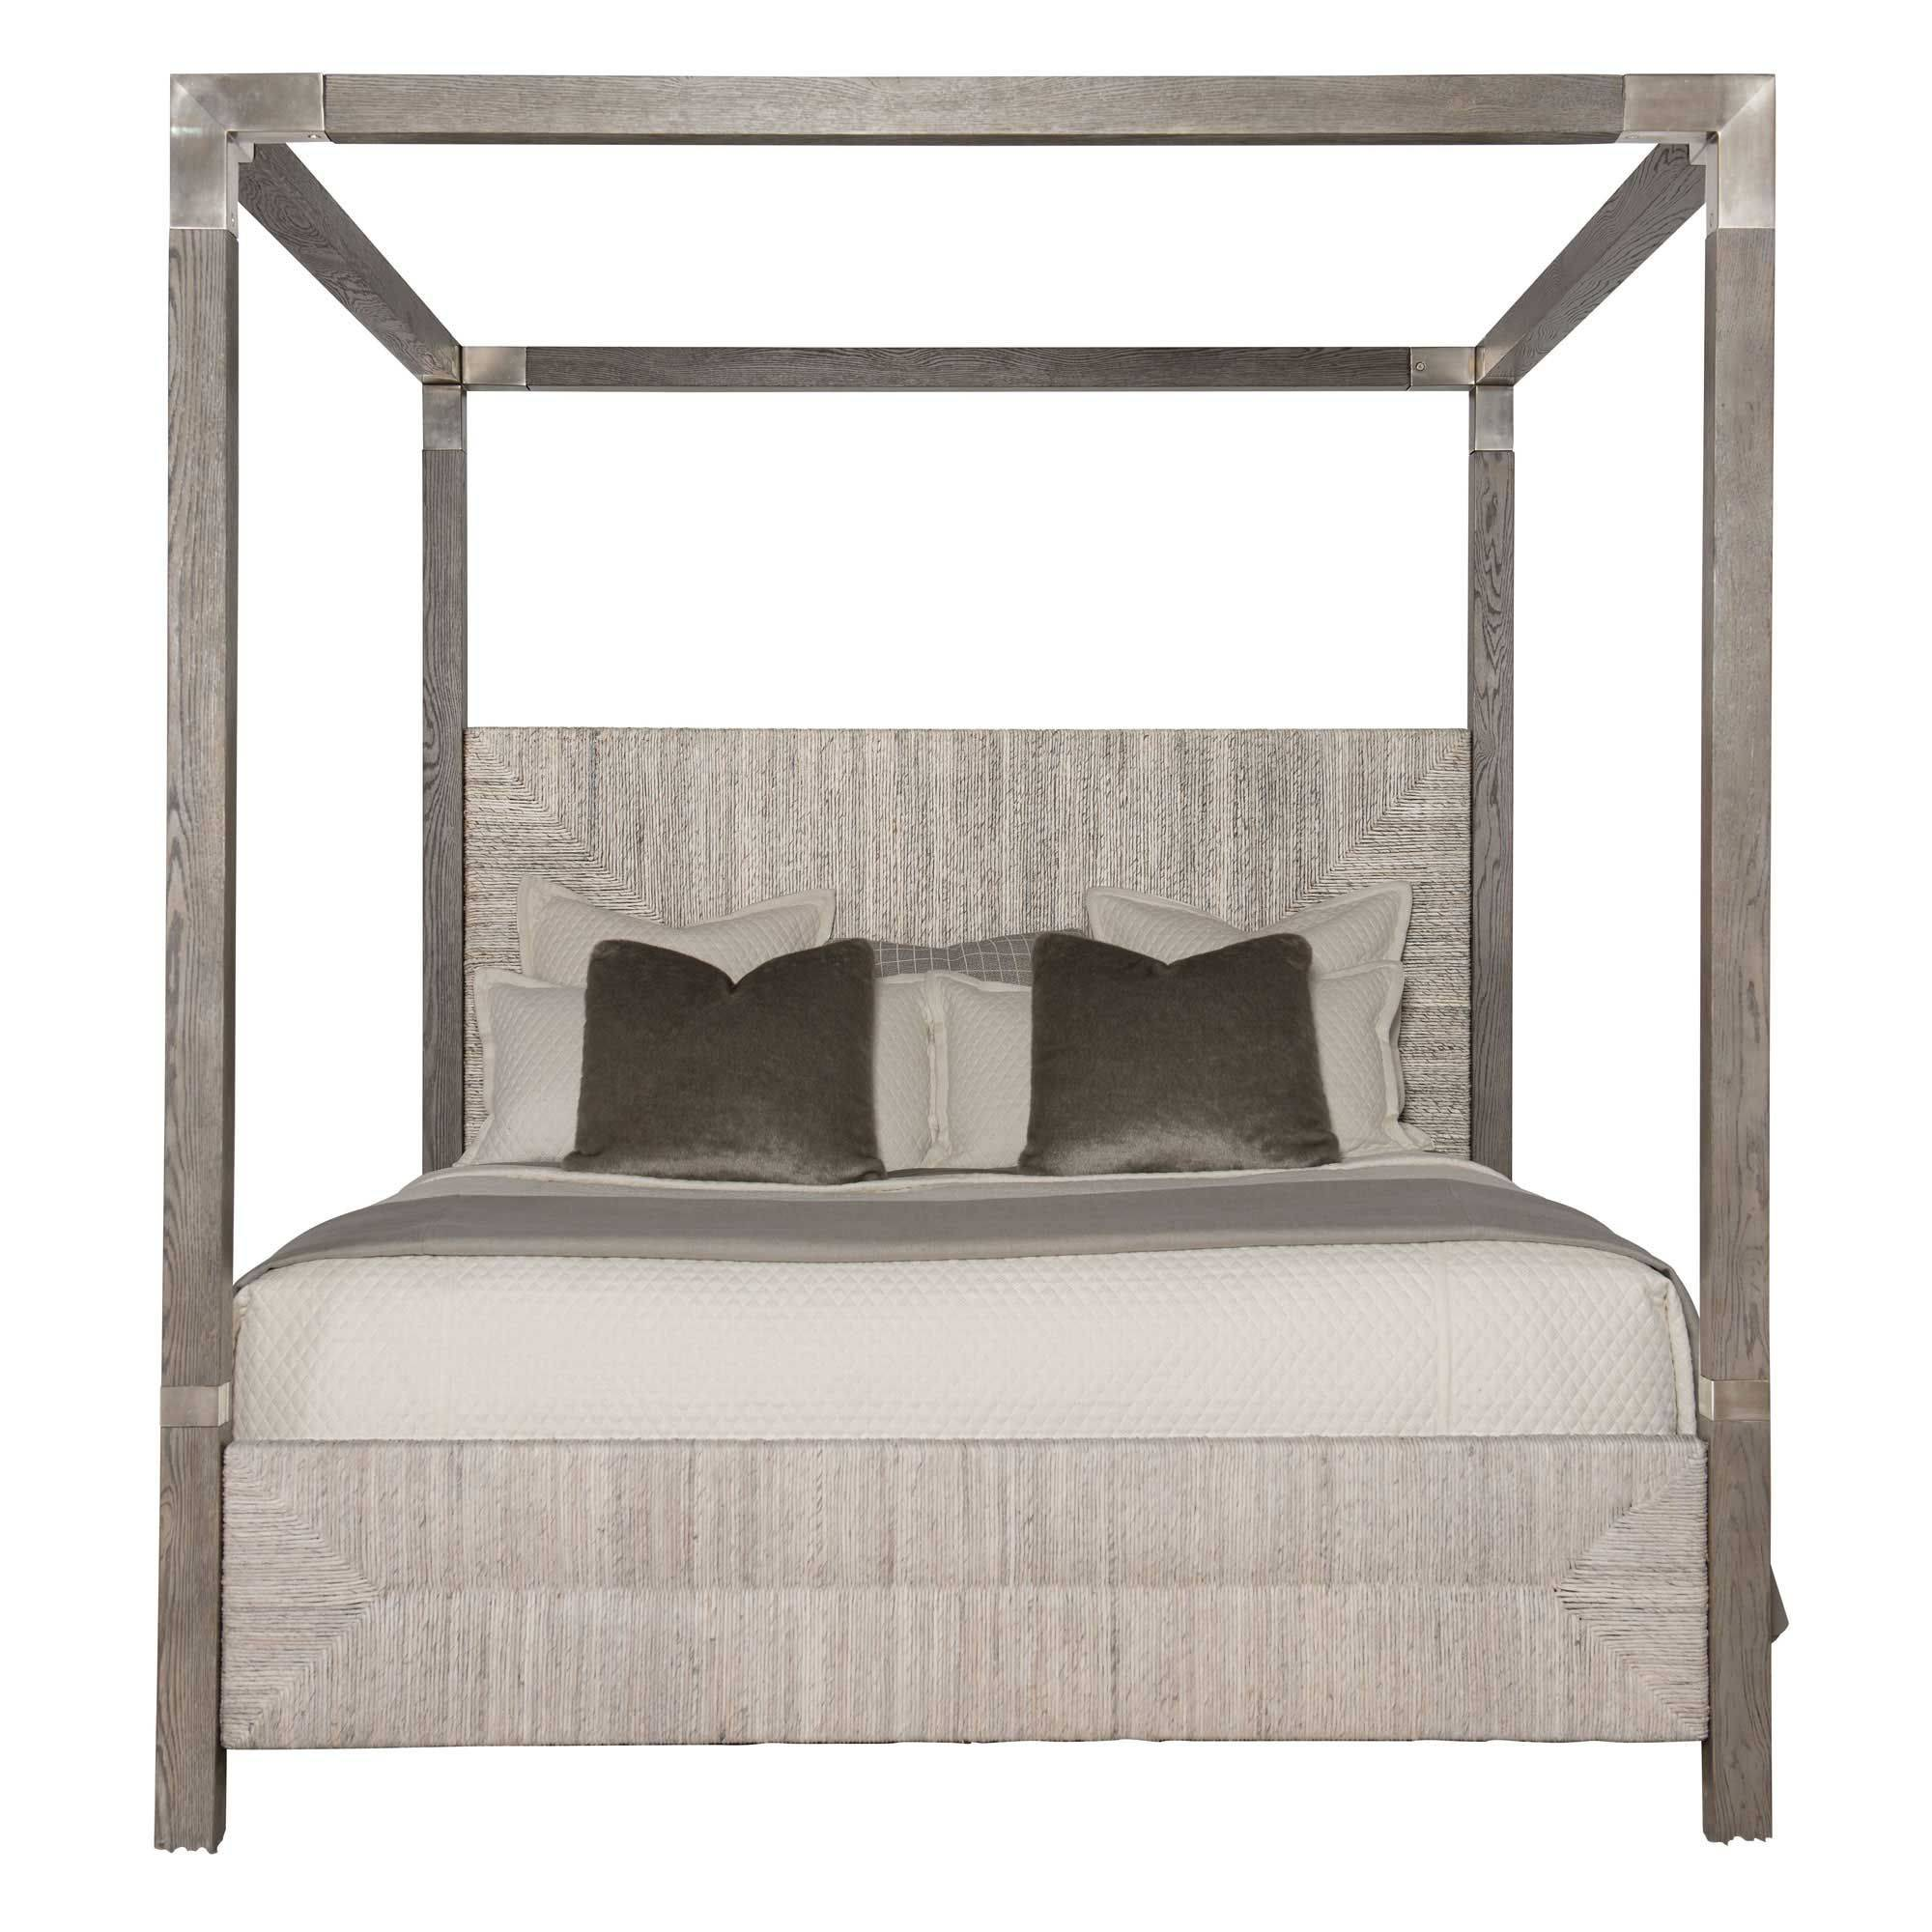 Modern Canopy Bed Awesome Palma Canopy Bed